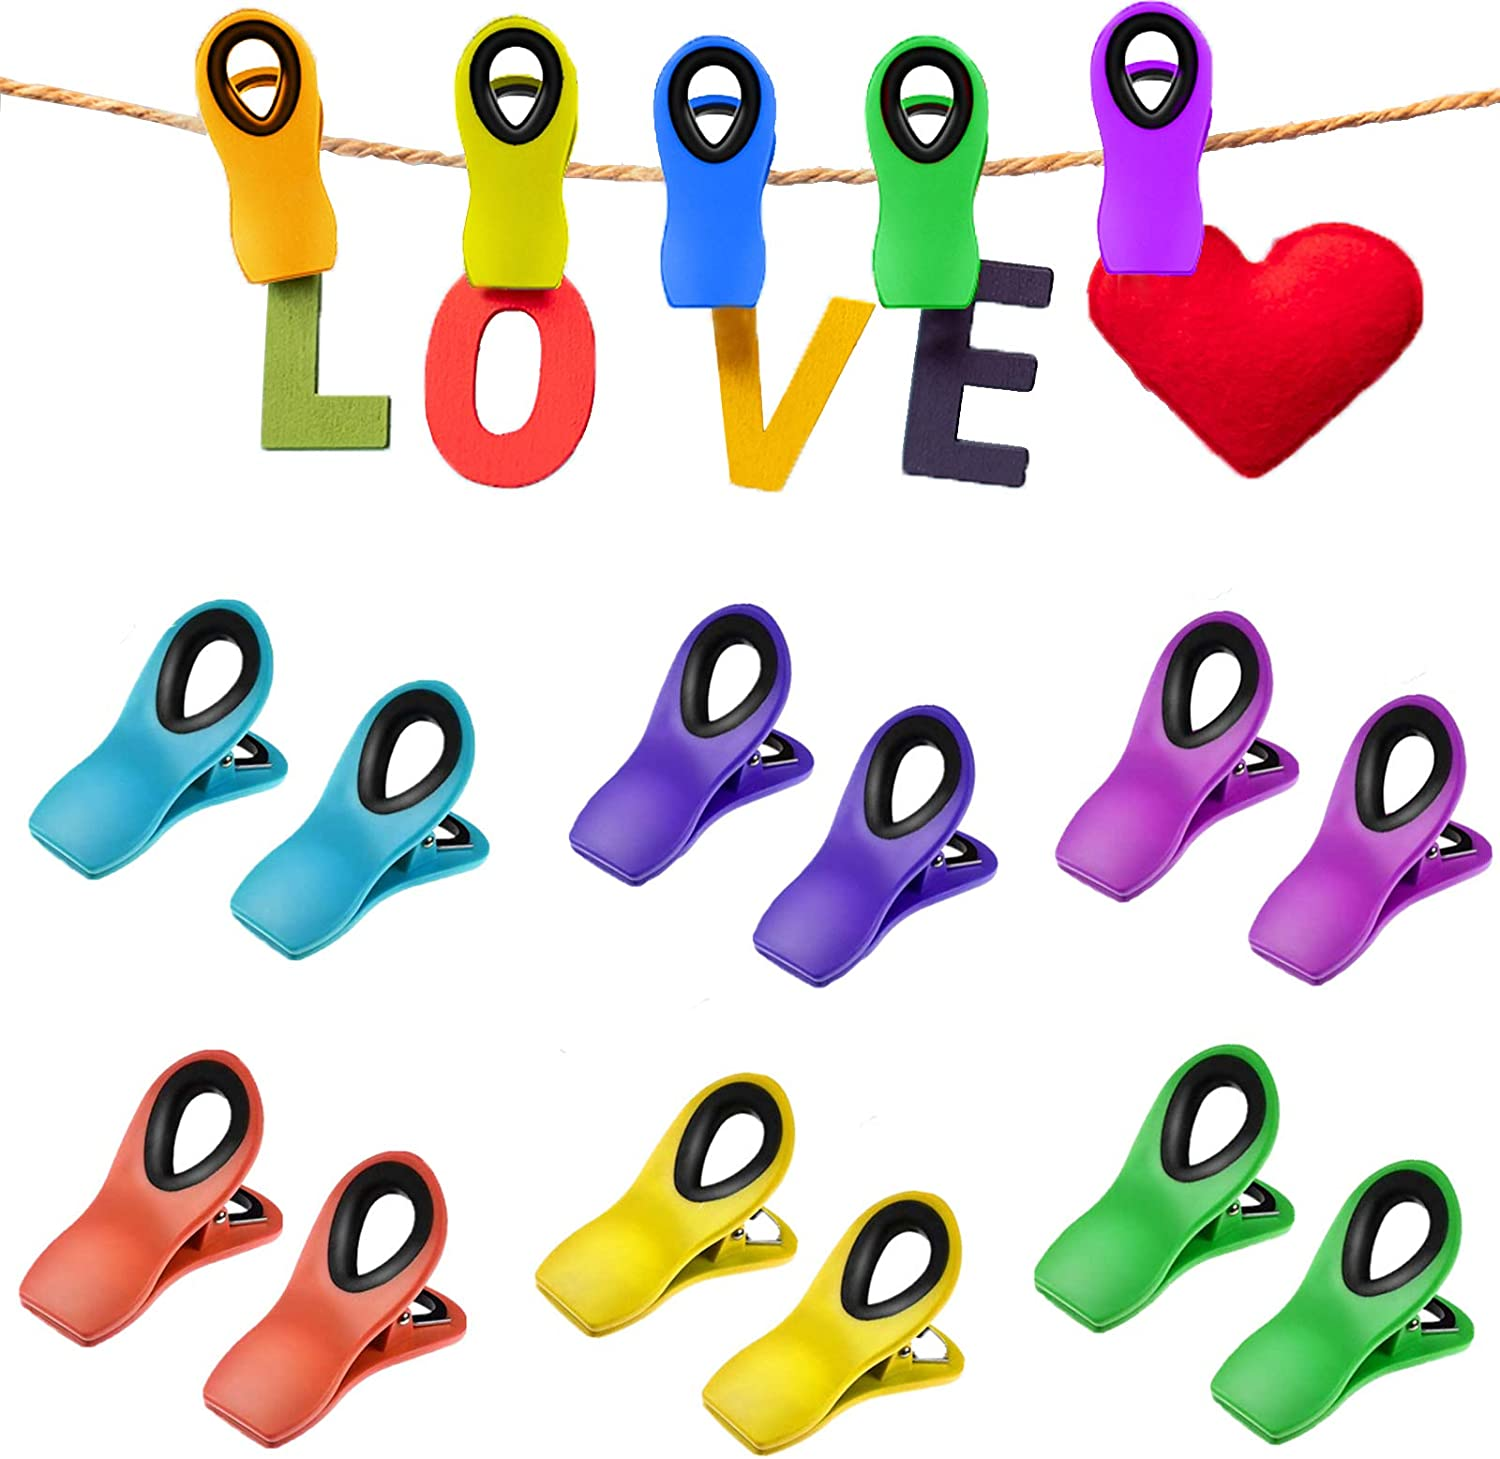 12 PCS Magnetic Clips, Chip Clips Bag Clips Food Clips, Chip Clips Magnetic, Cook with Color Chip Clips, Multicolored Chip Clips for Food Storage Home Kitchen Office School Supplies